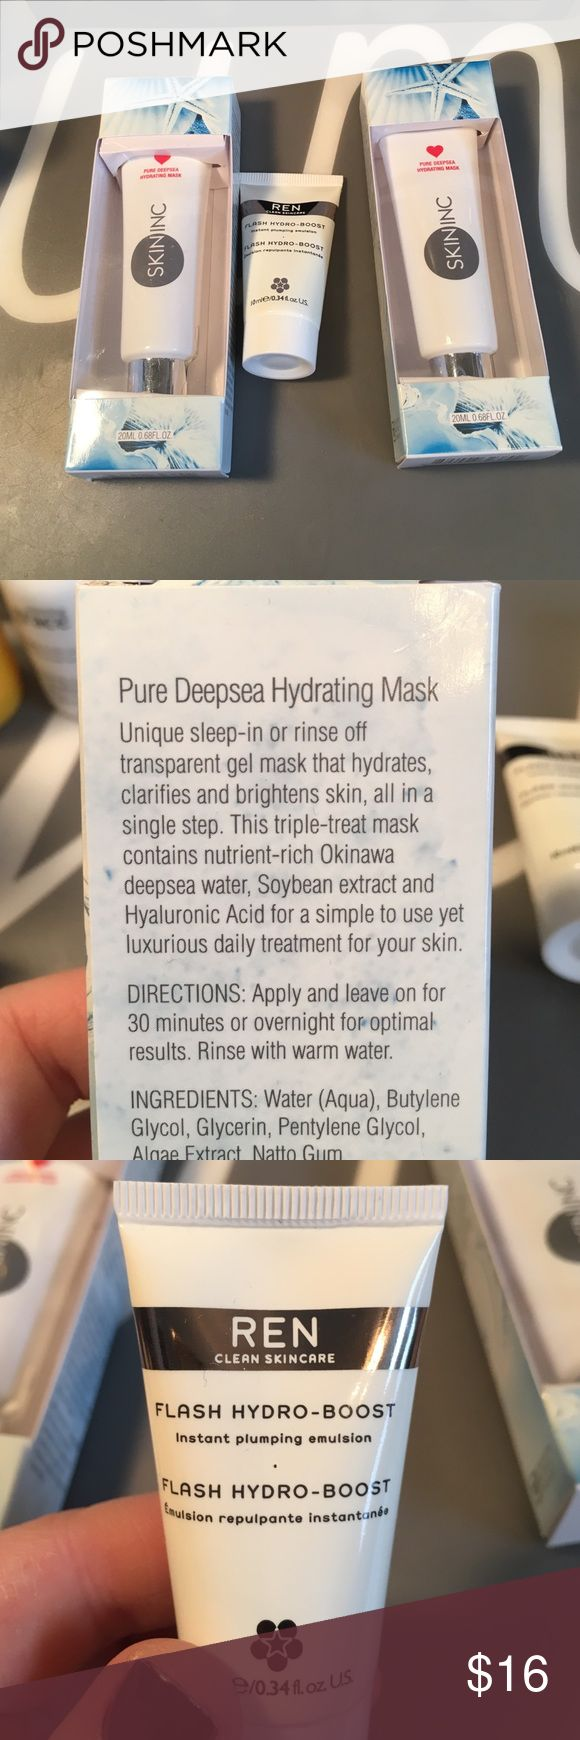 Skin Inc. hydrating mask and Ren moisturizer- new Pure deepsea hydrating masks and Ren flash hydro boost. New. Masks retail for $20 EACH. Makeup